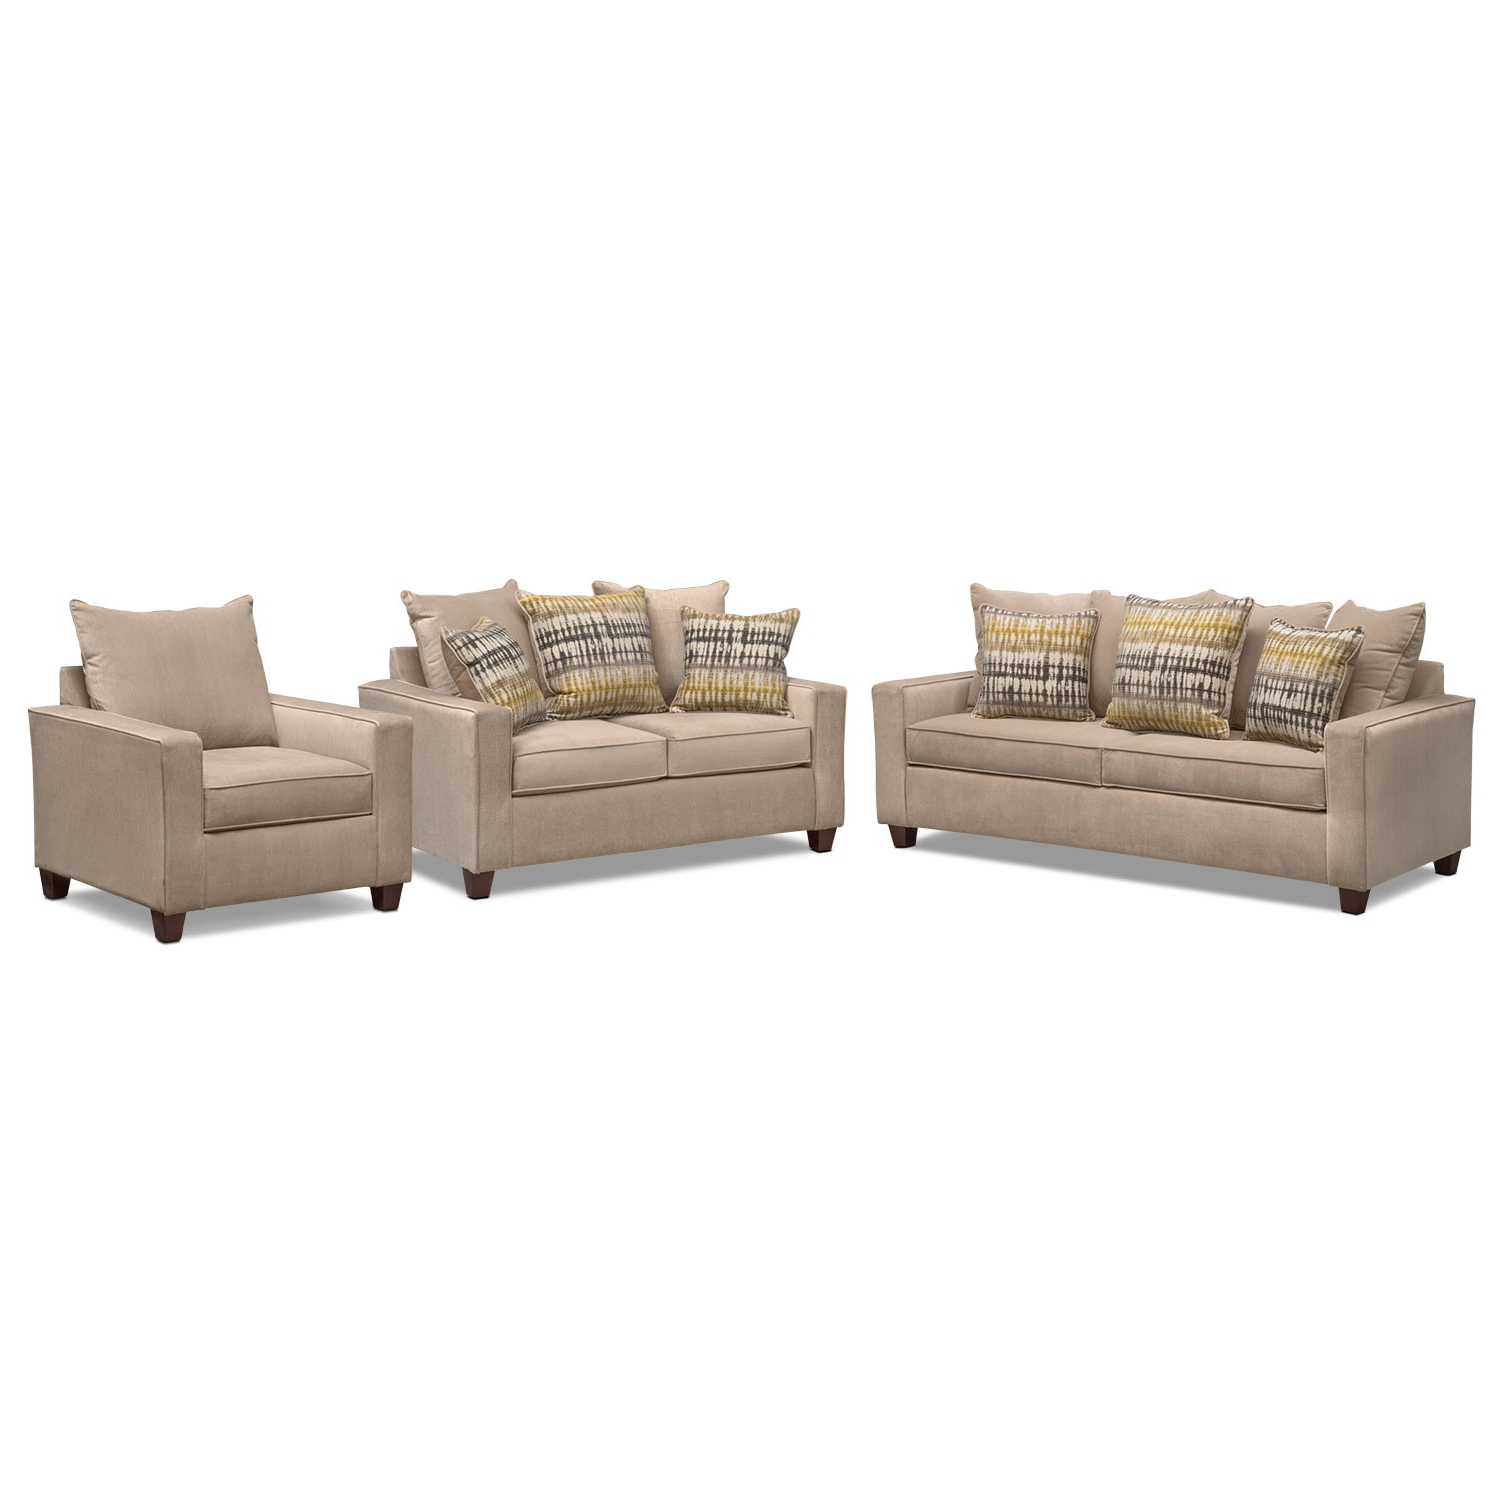 Bryden Queen Innerspring Sleeper Sofa, Loveseat And Chair Set Intended For Famous Sofa Loveseat And Chair Set (View 7 of 20)